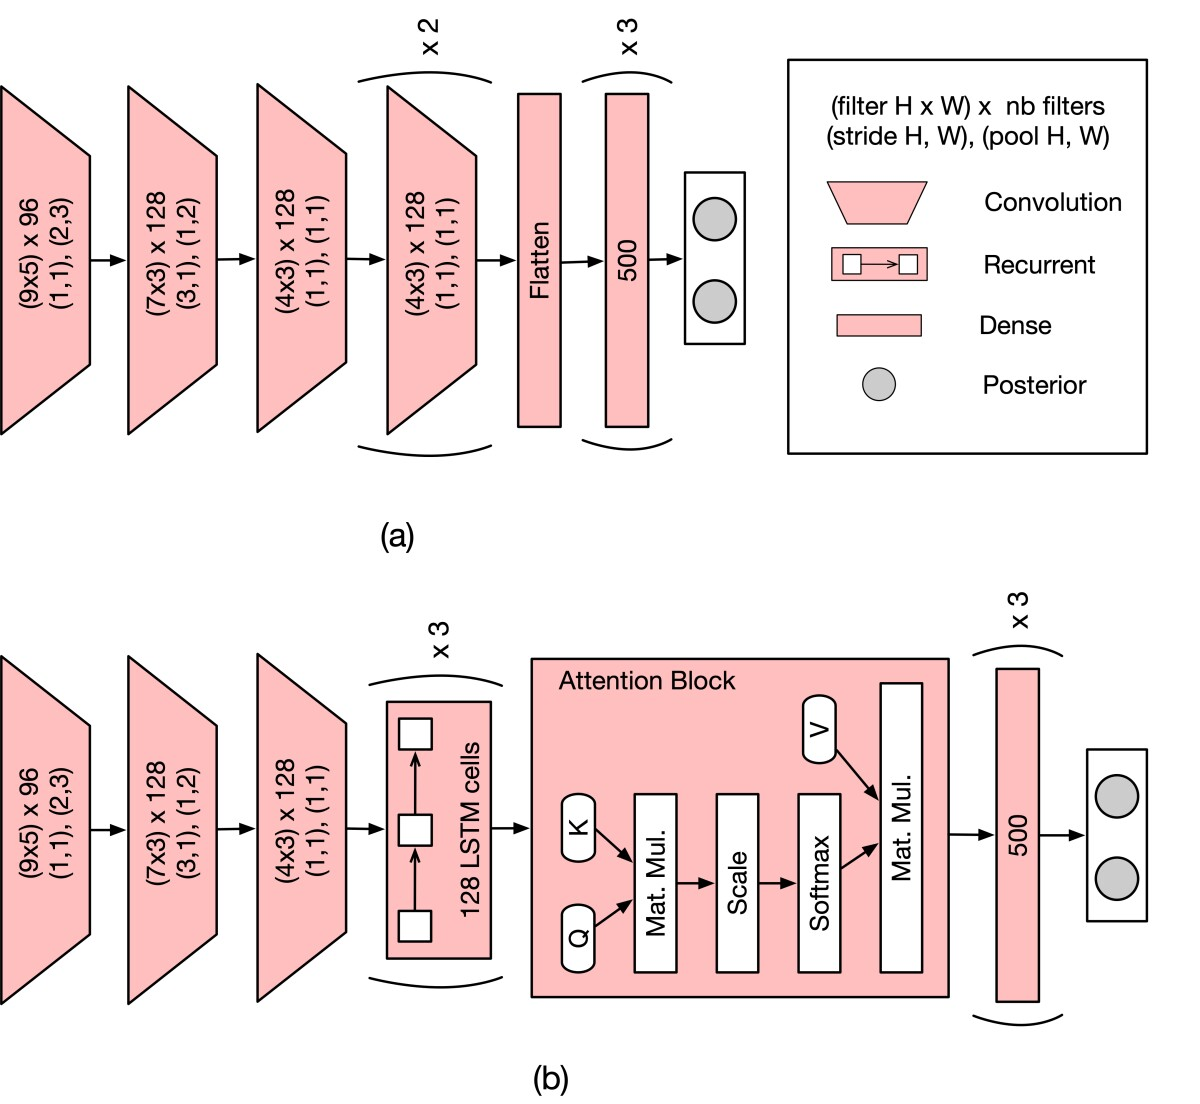 Diagrams indicating differences between a conventional CNN architecture and a convolutional-recurrent-attention architecture.